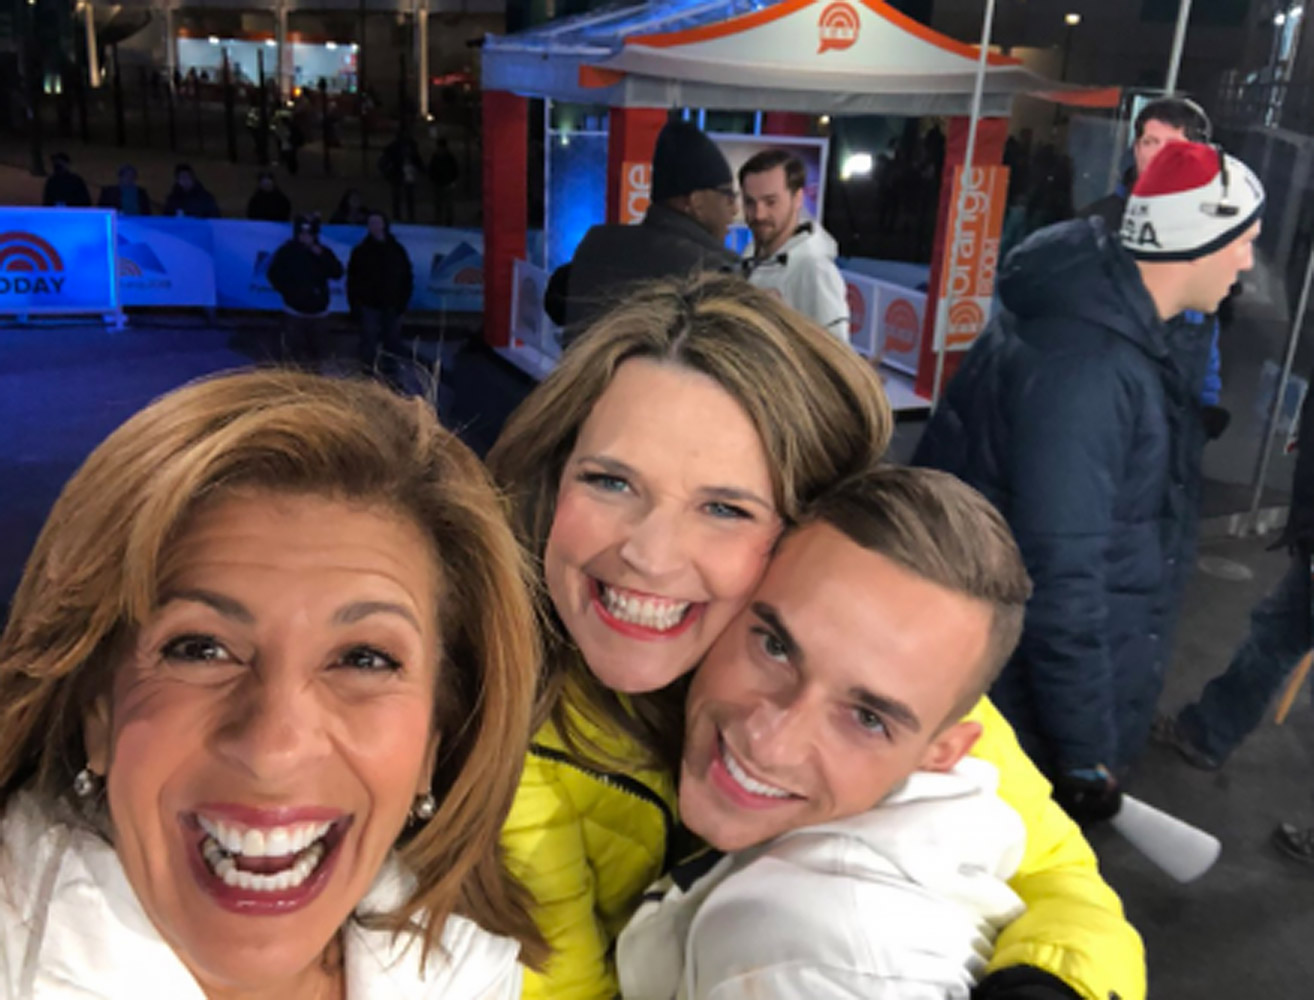 Today Show behind the Scenes OlympicsPhoto: Today